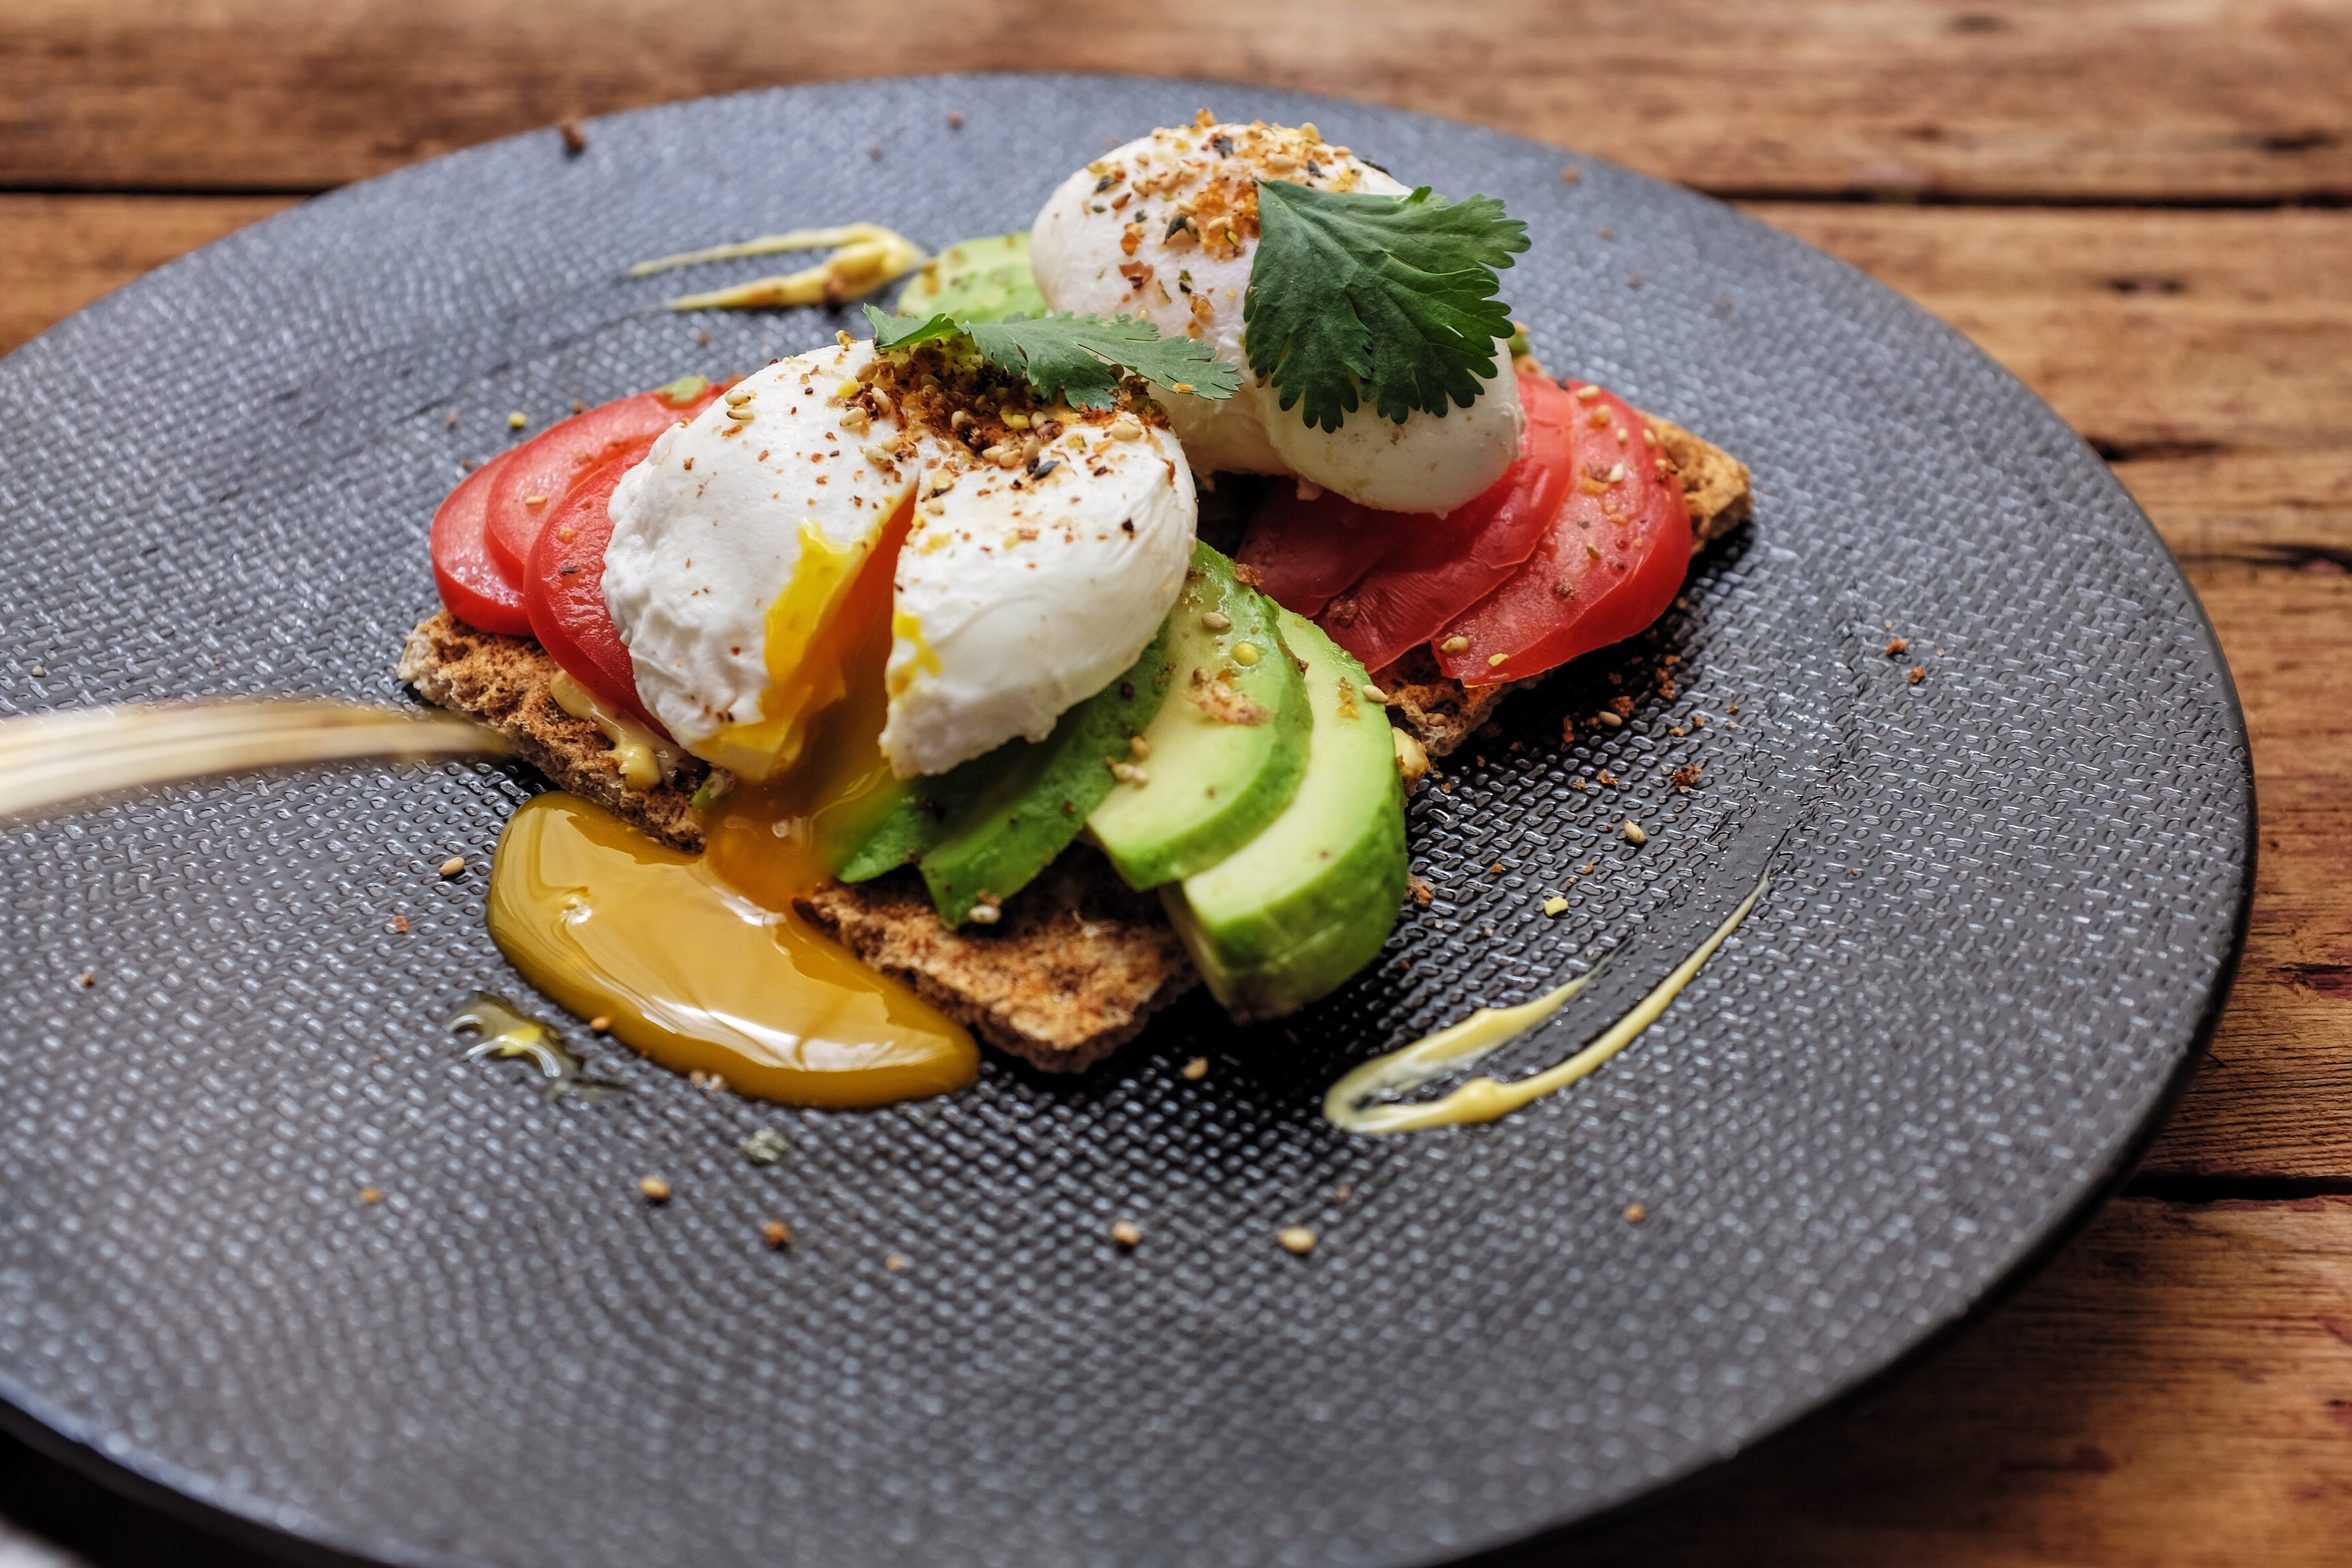 Tasty Eggs with avocado and tomatoes